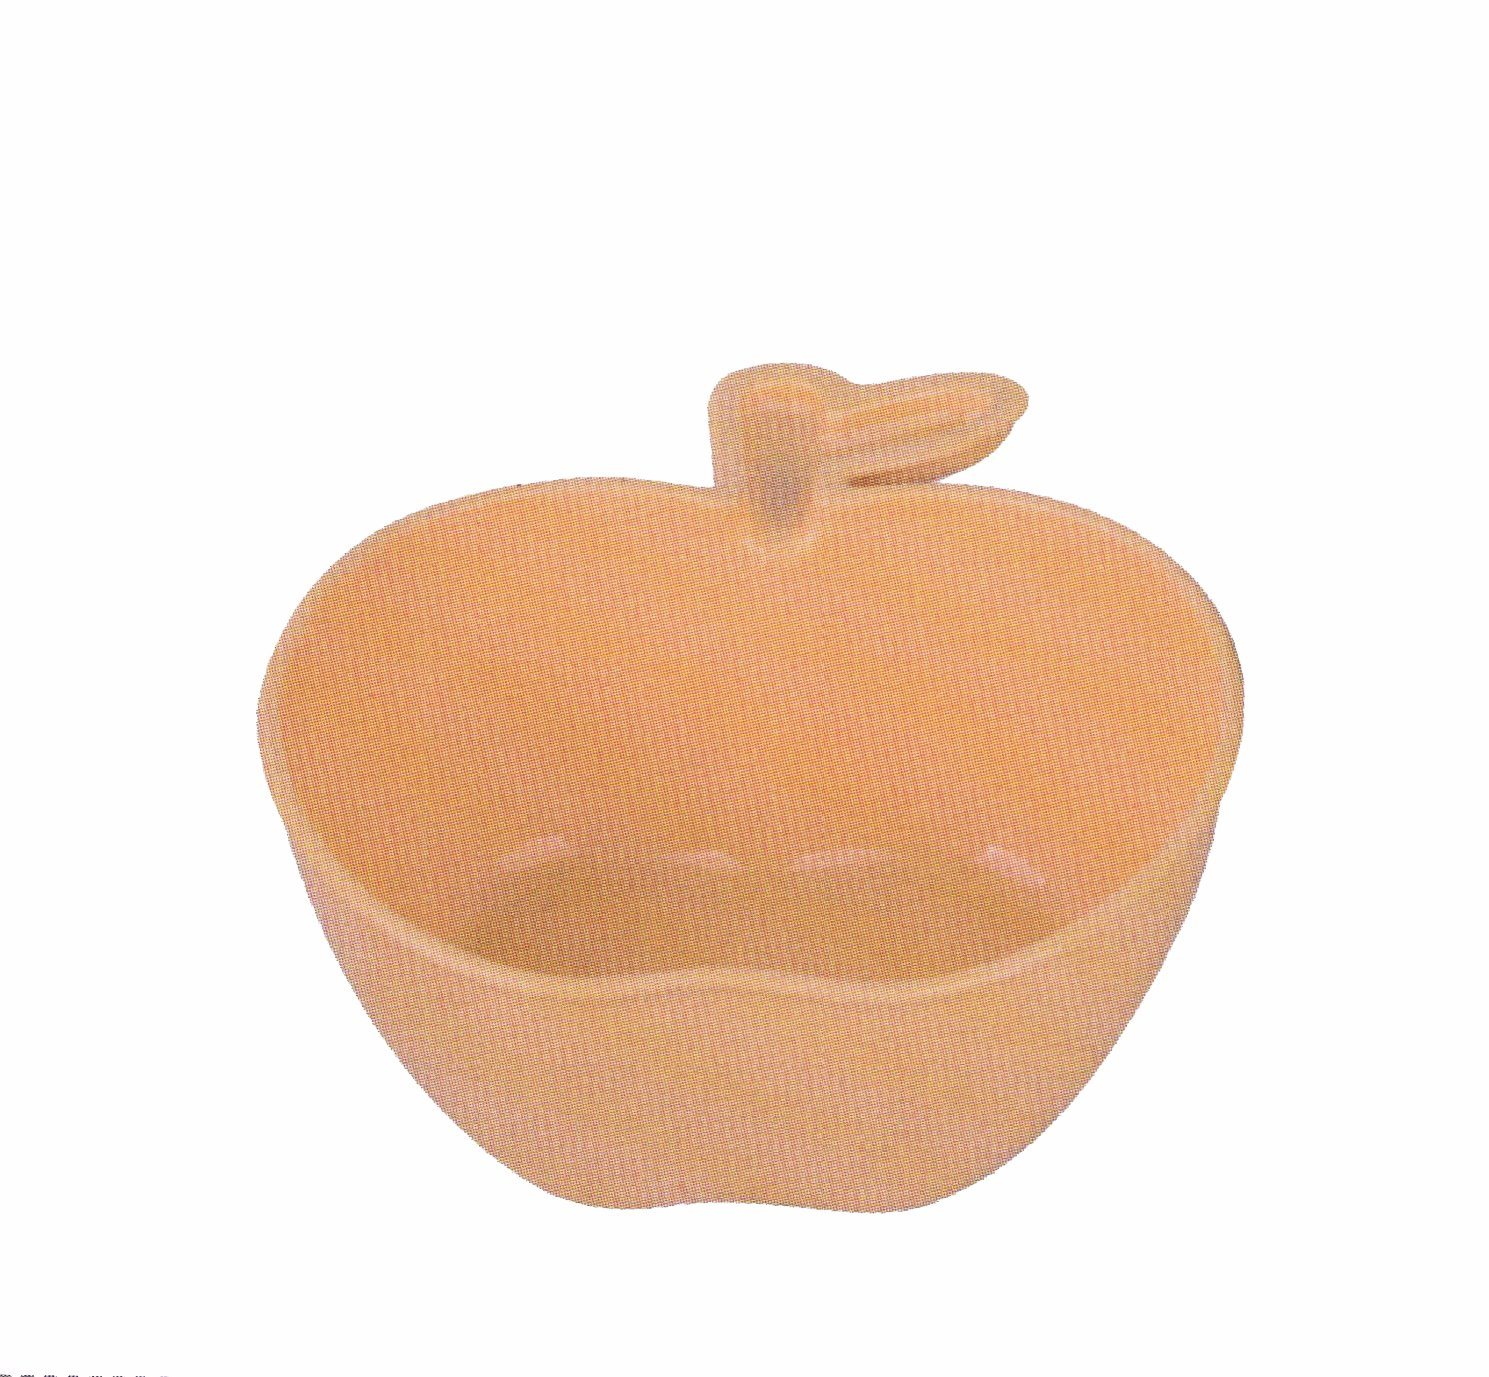 Nature Wheat Straw Apple Shape Bowl-Nwc003-Dinnerware